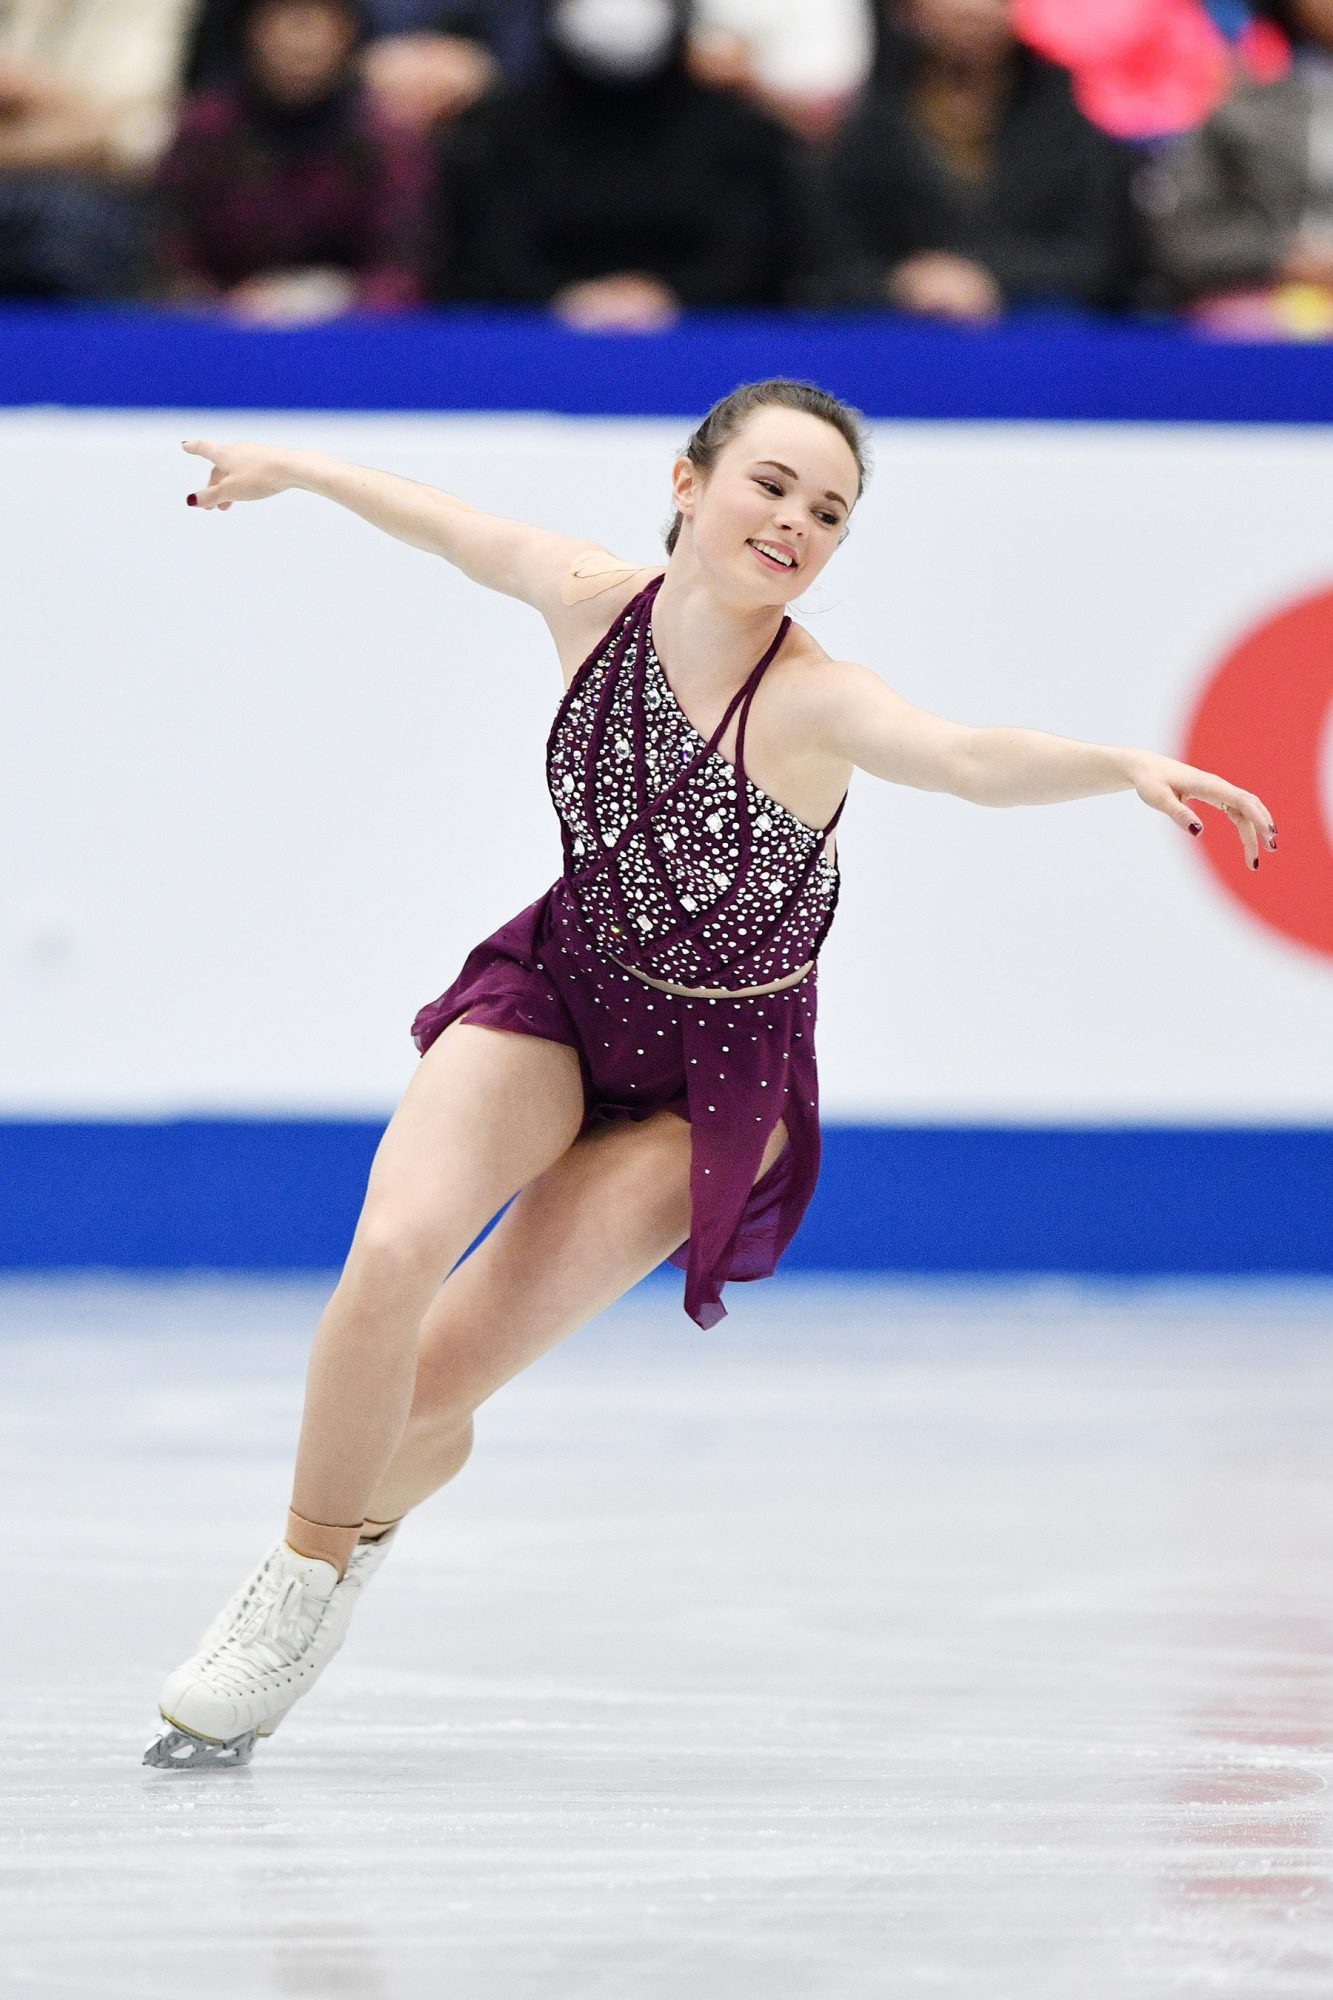 A Figure Skater Was Accused of Purposely Slashing Competitor with Skate